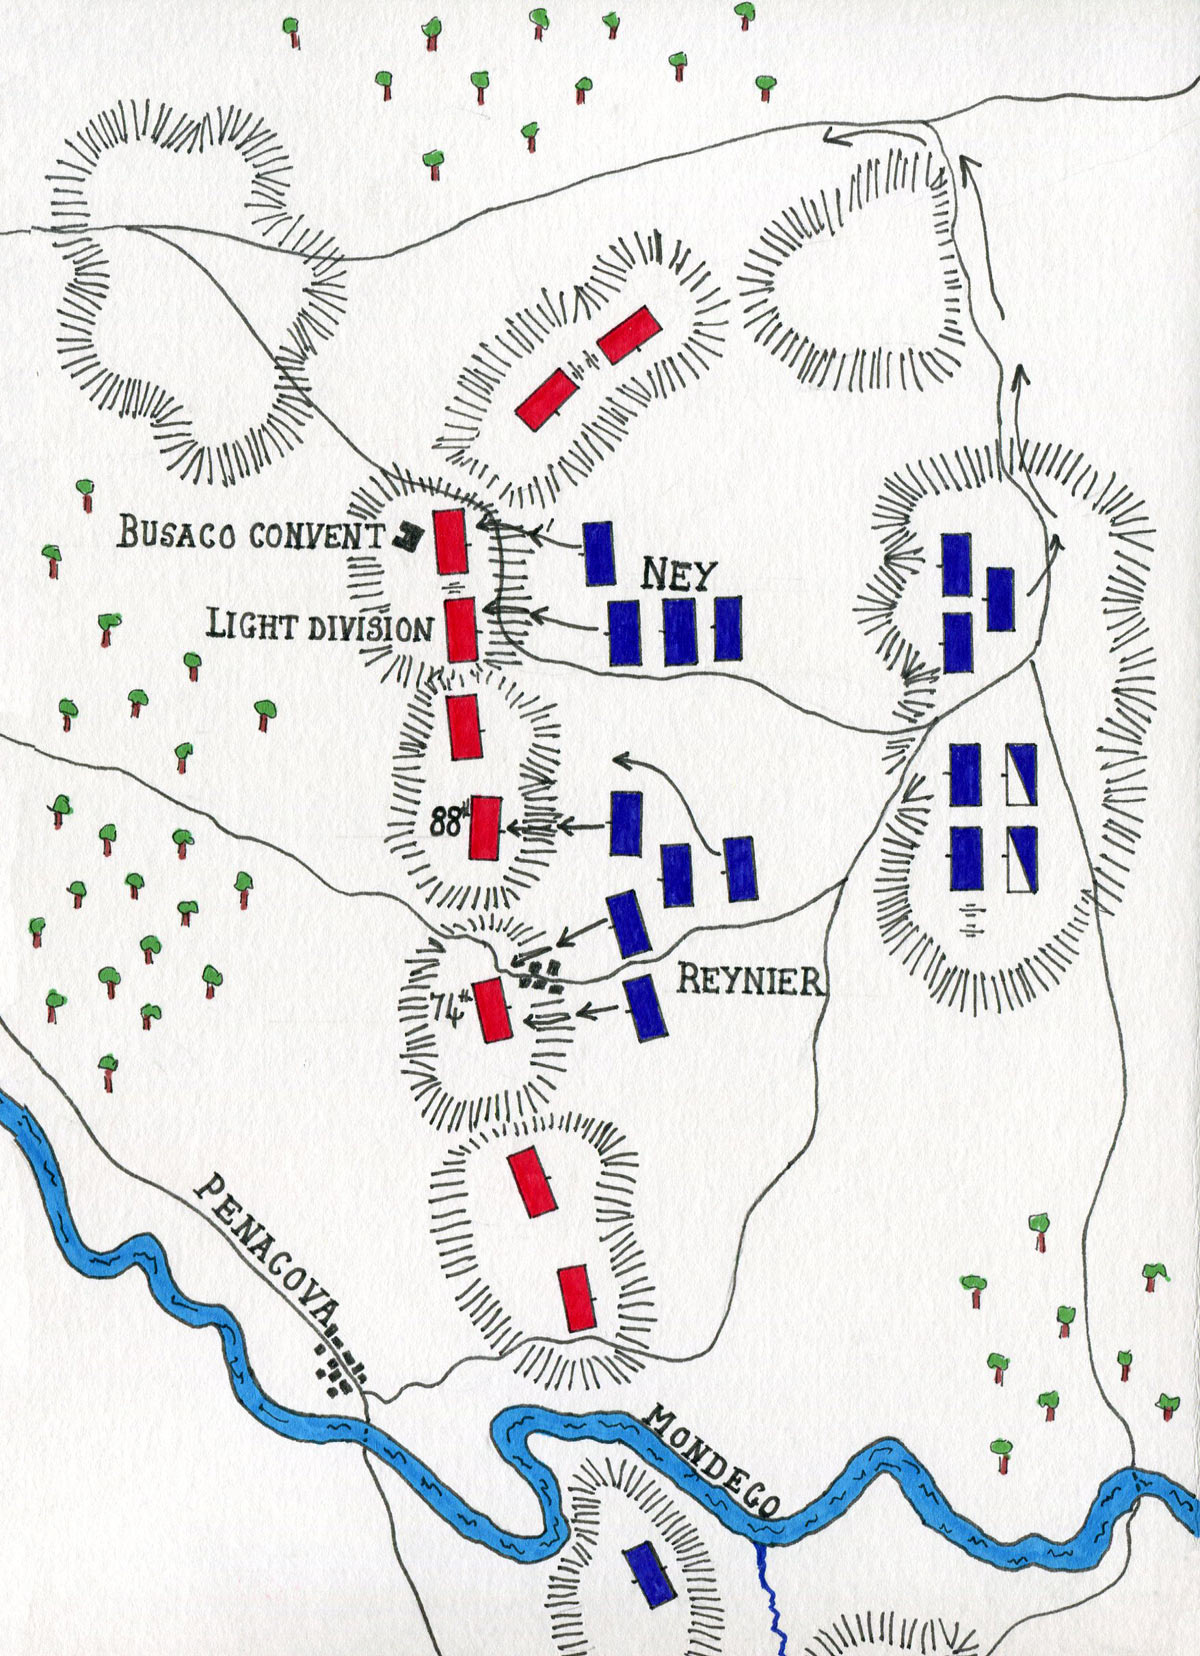 Map of the Battle of Busaco on 27th September 1810 in the Peninsular: map by John Fawkes